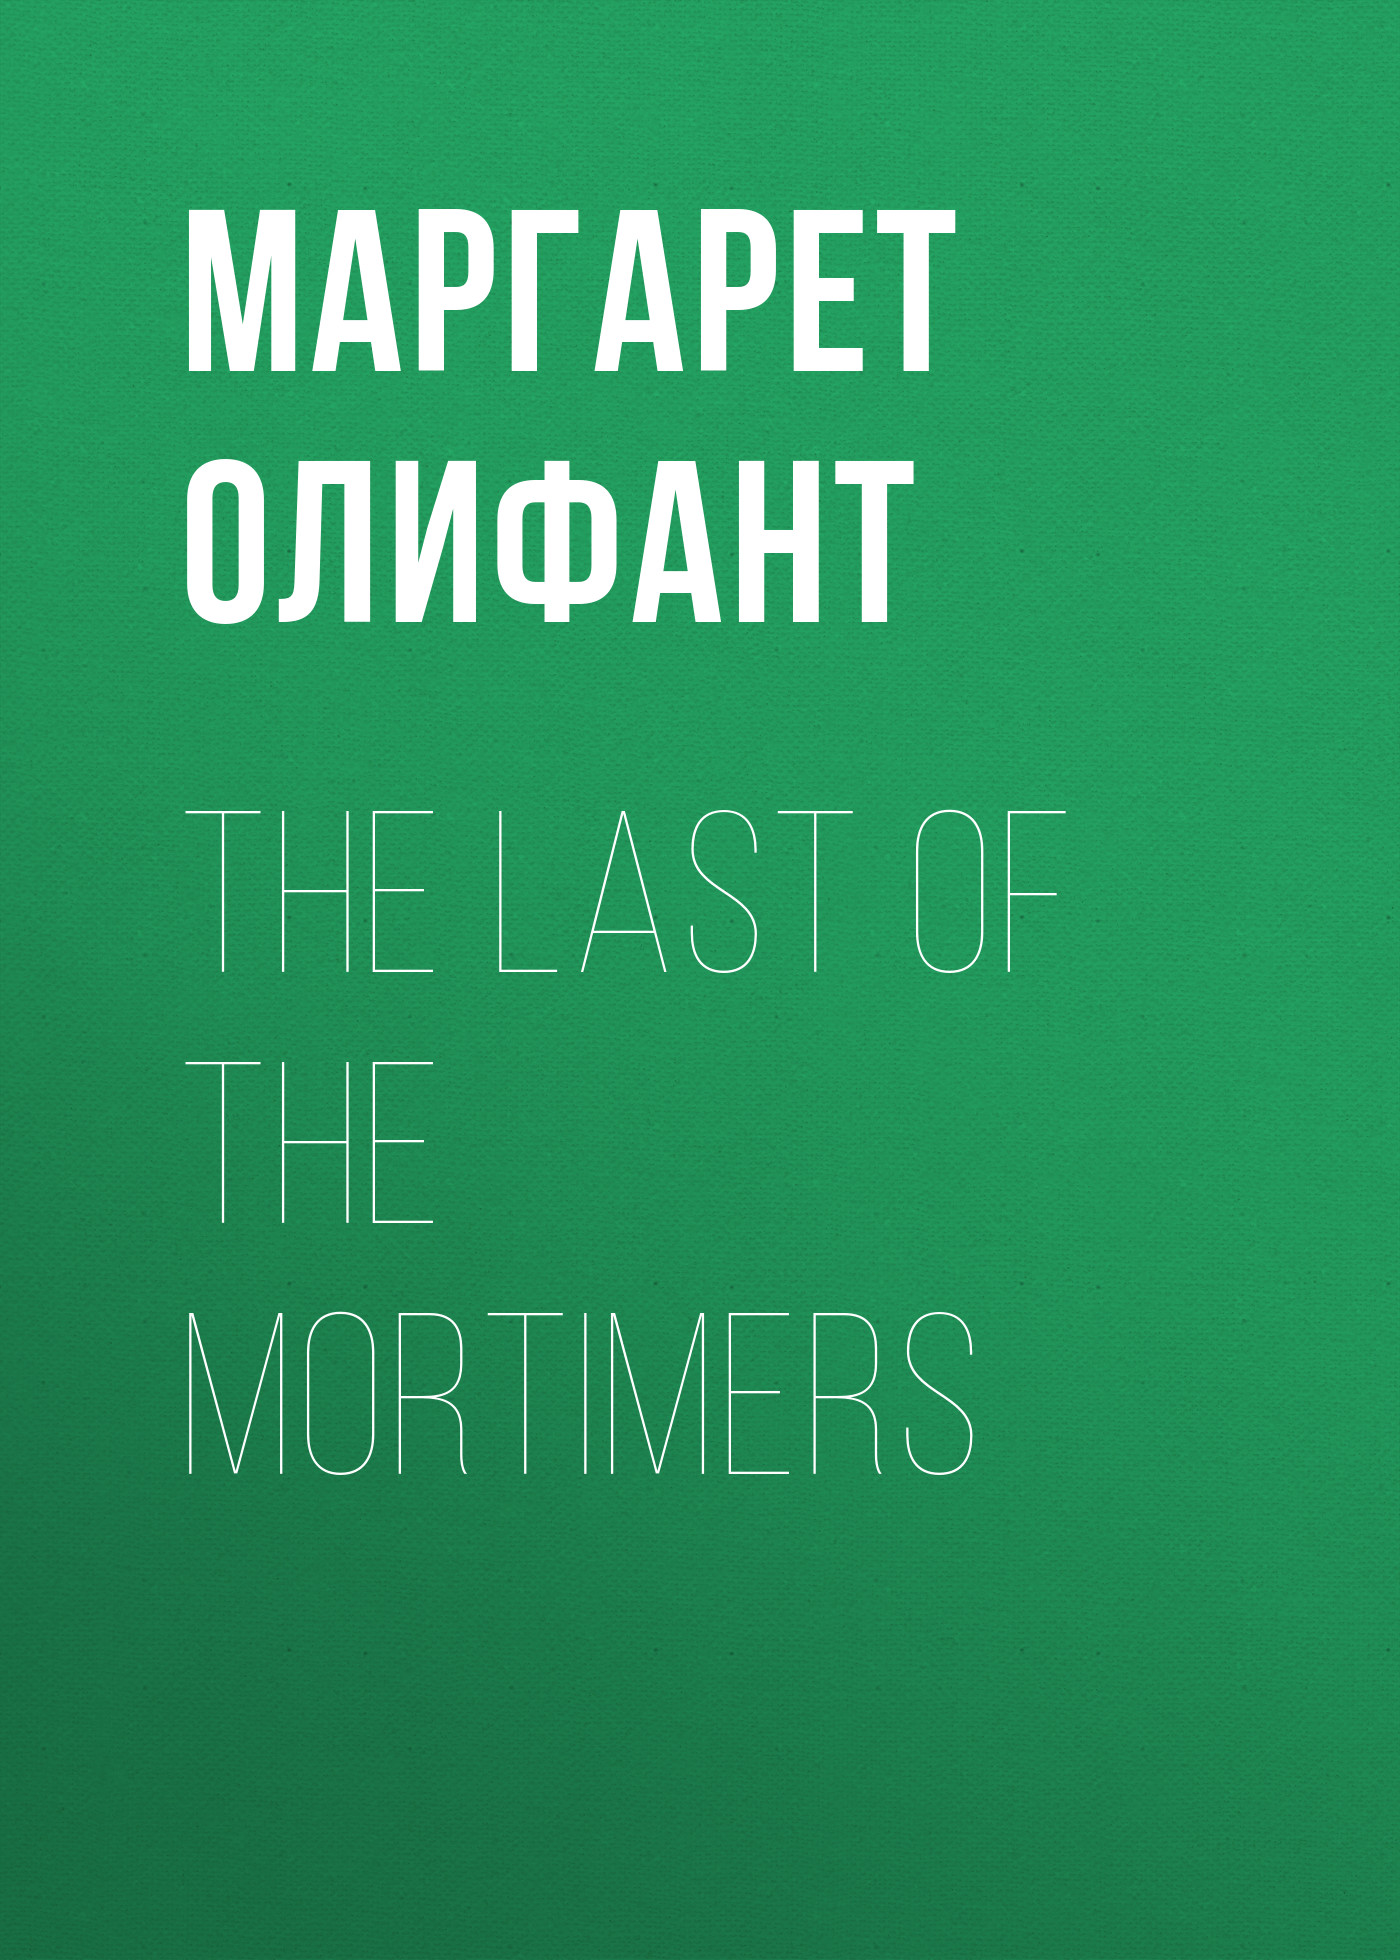 Фото - Маргарет Олифант The Last of the Mortimers маргарет олифант the open door and the portrait